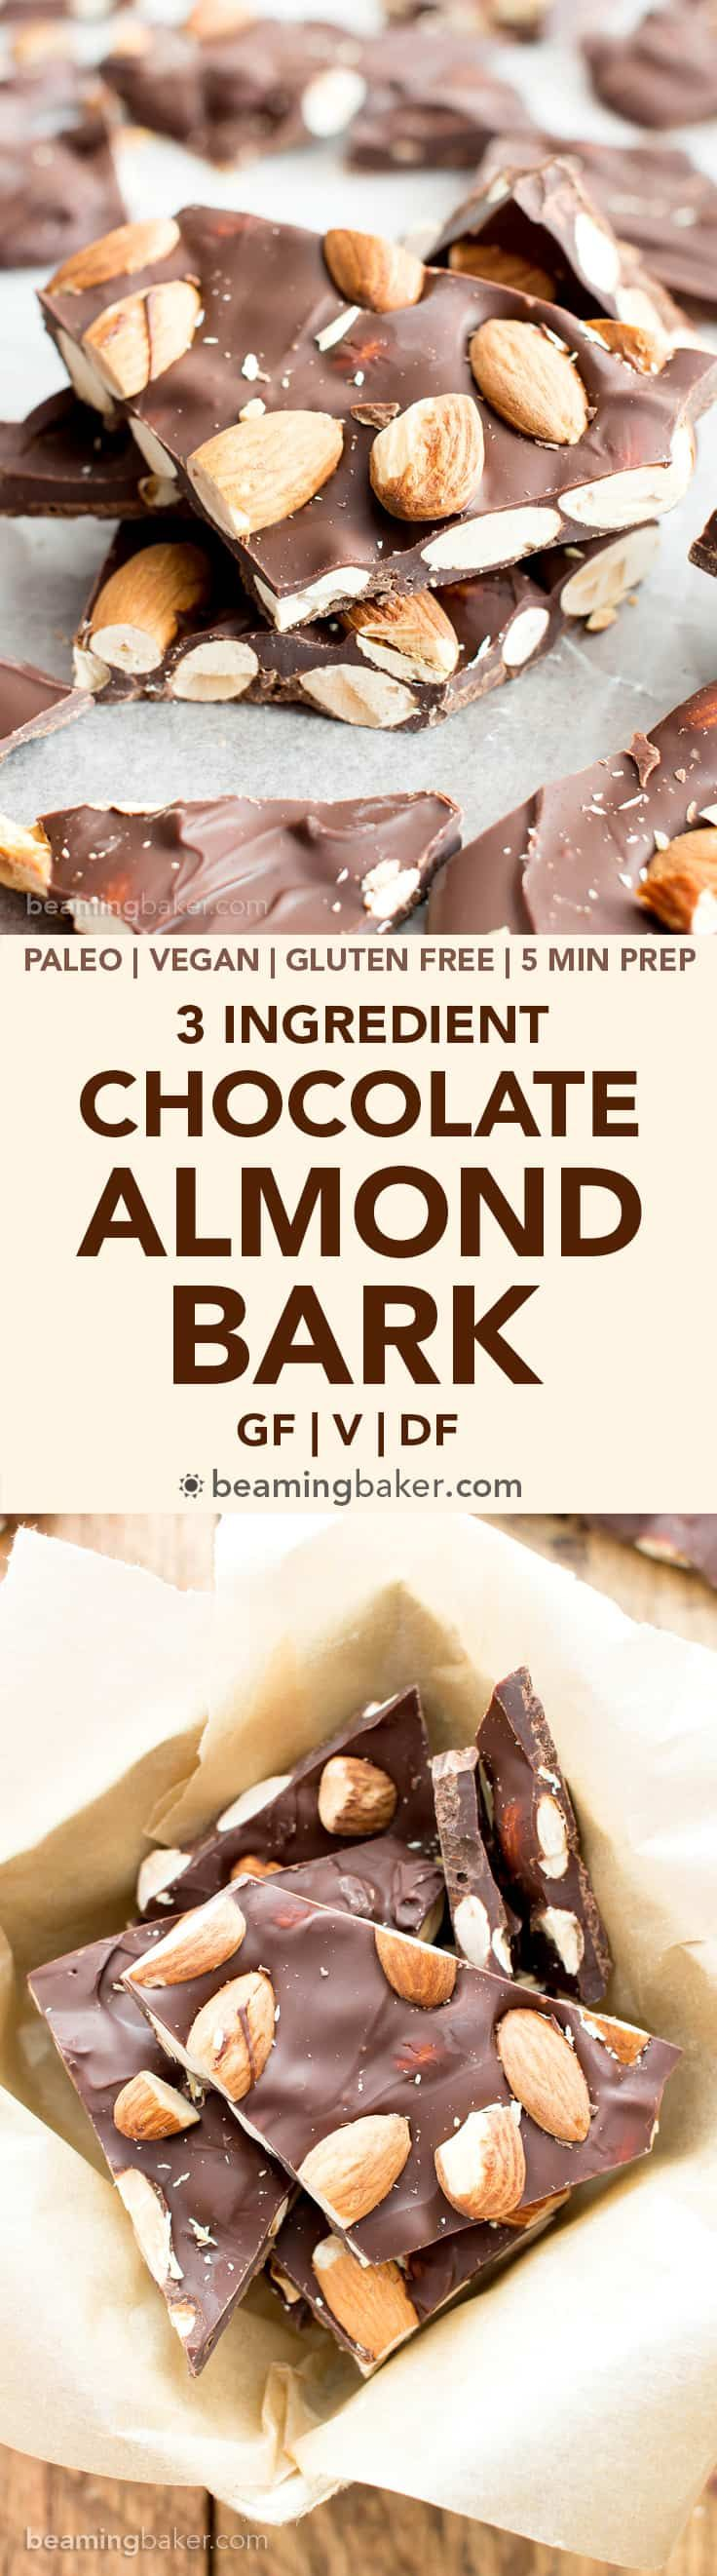 3 Ingredient Chocolate Almond Bark Recipe indulgent chocolate bark perfectly packed with almonds.  | BeamingBaker.com